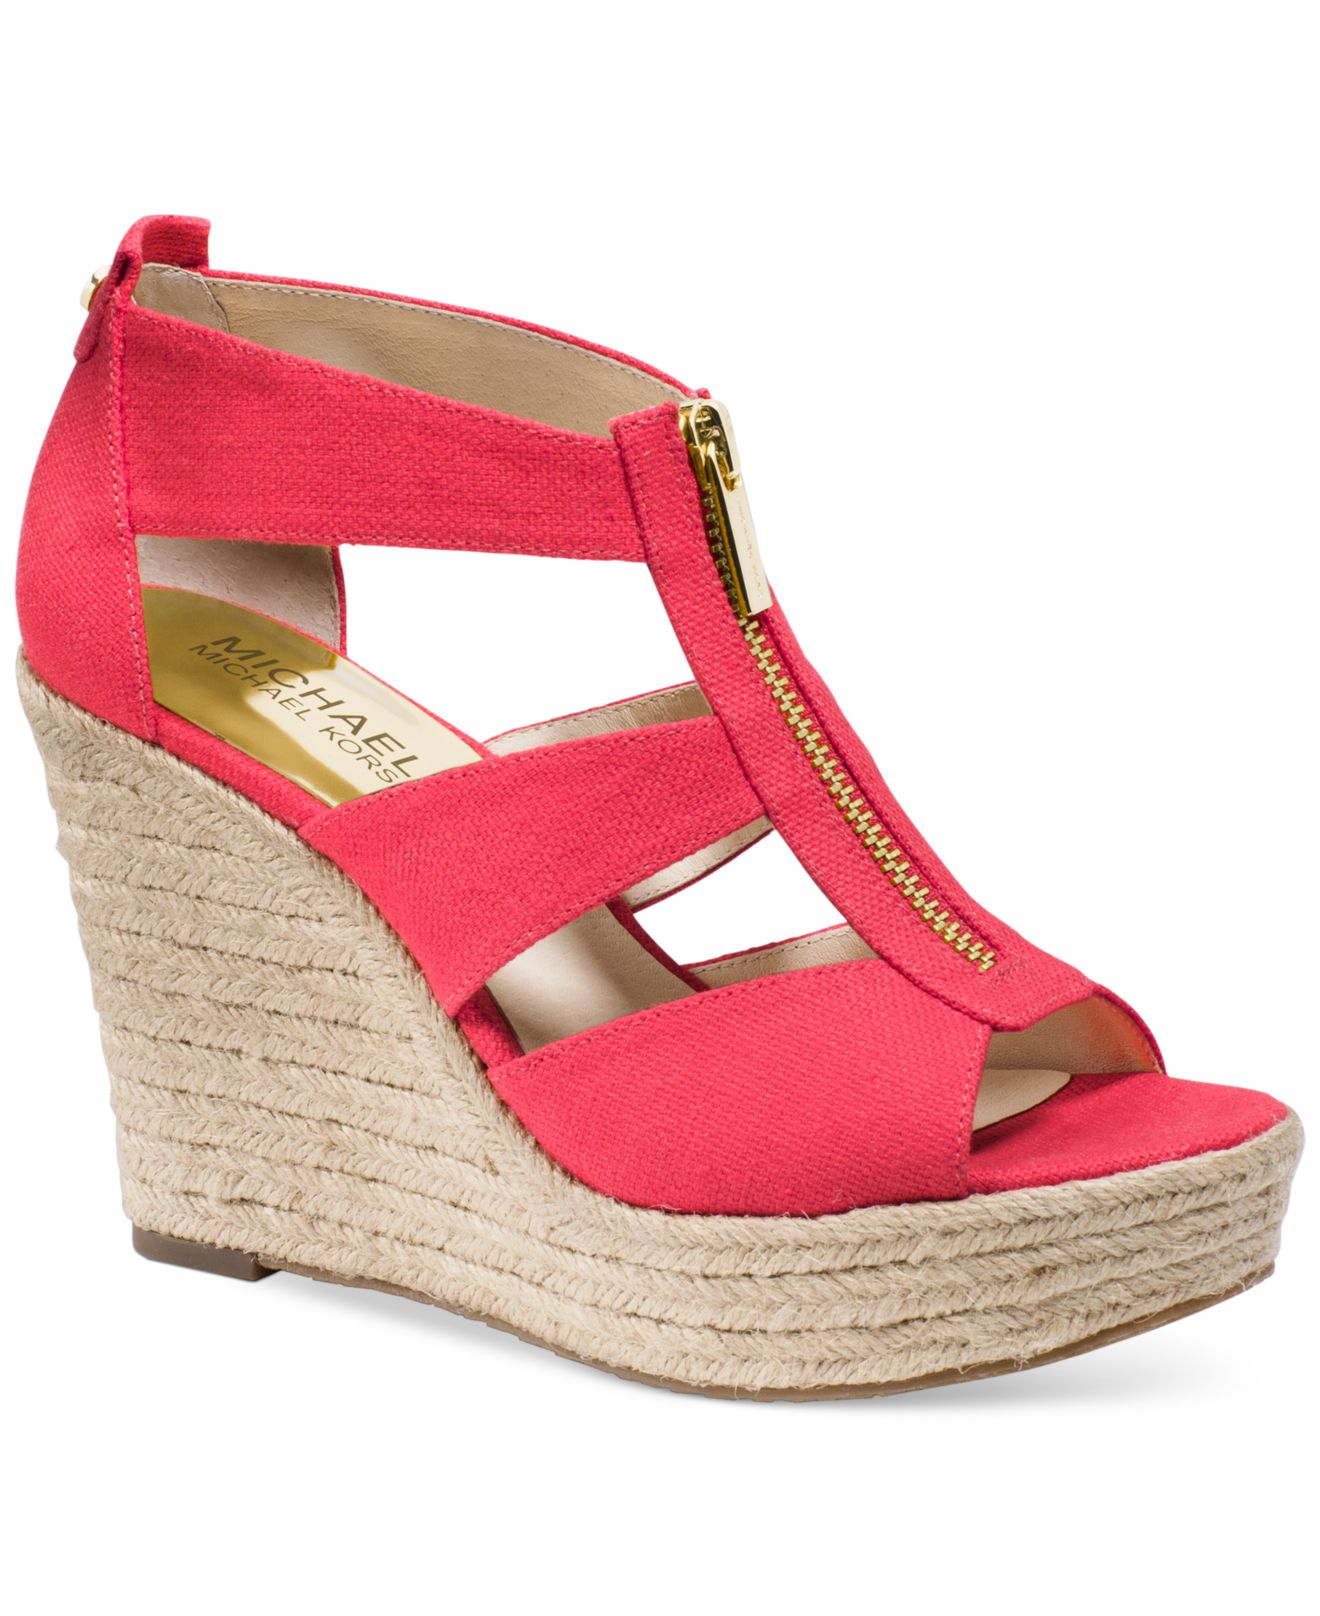 Red Wedge Open Toe Shoes